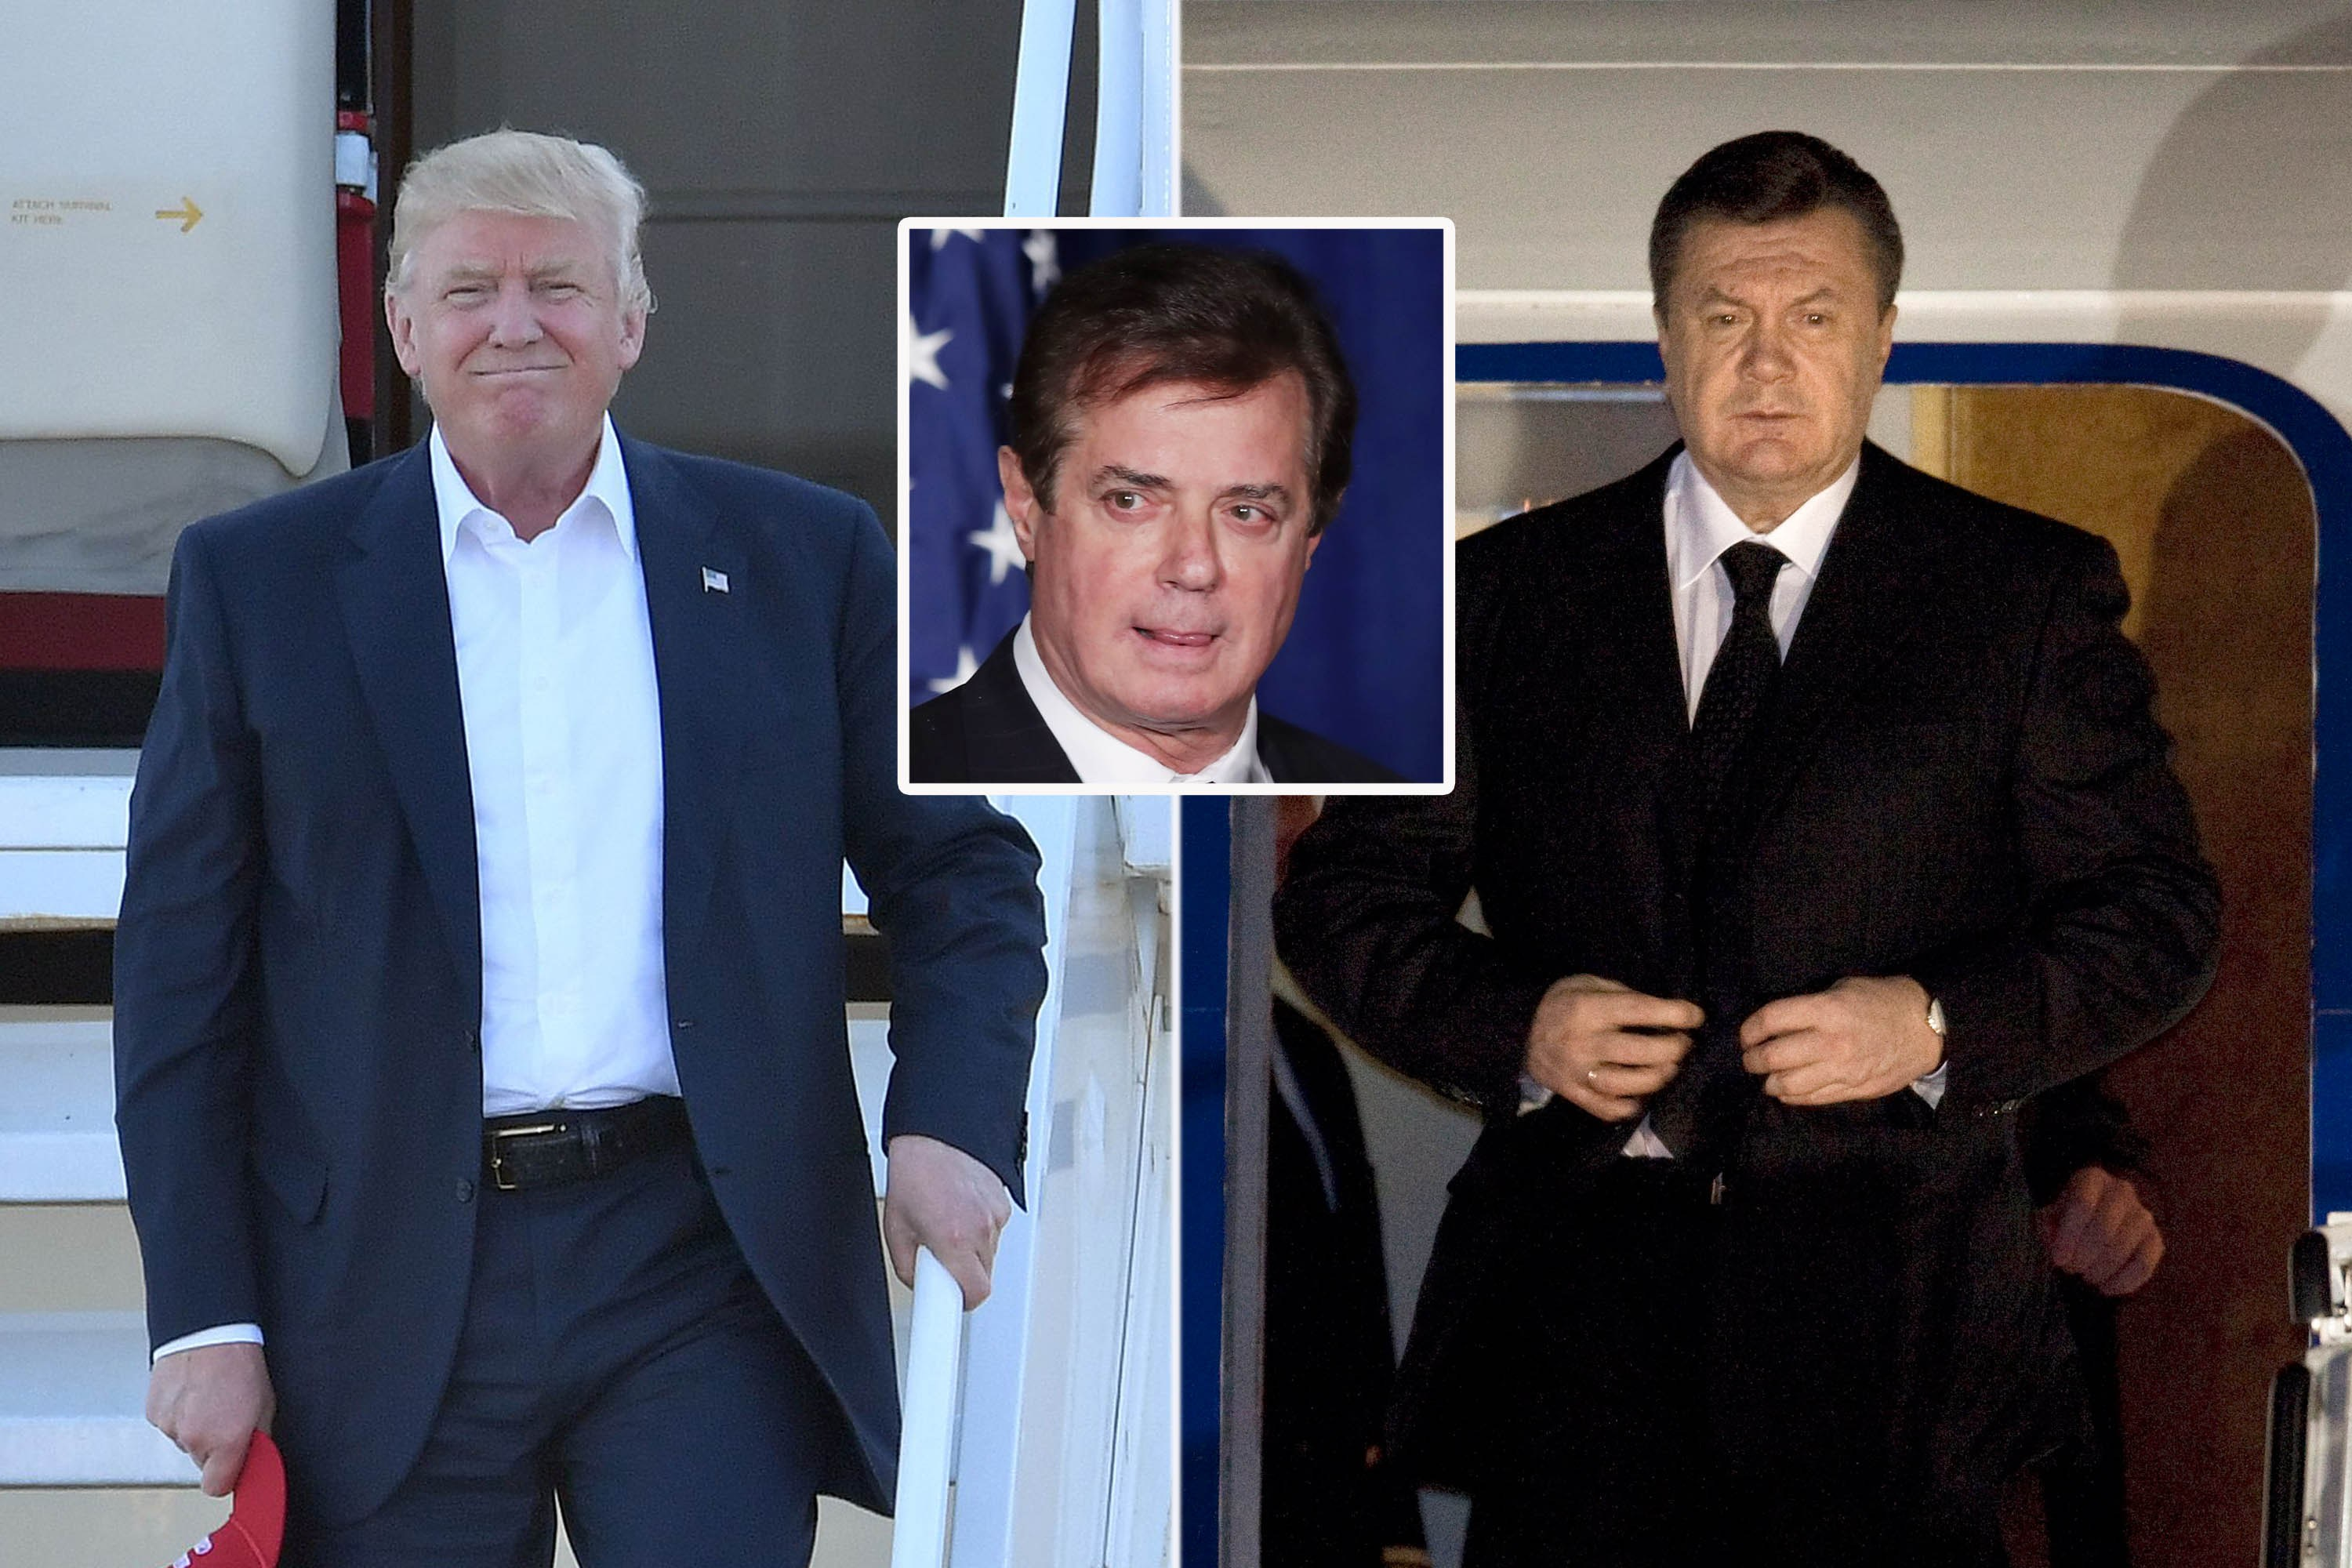 https://rubic.us/wp-content/uploads/2017/06/trump-manafort-yanukovych.jpg